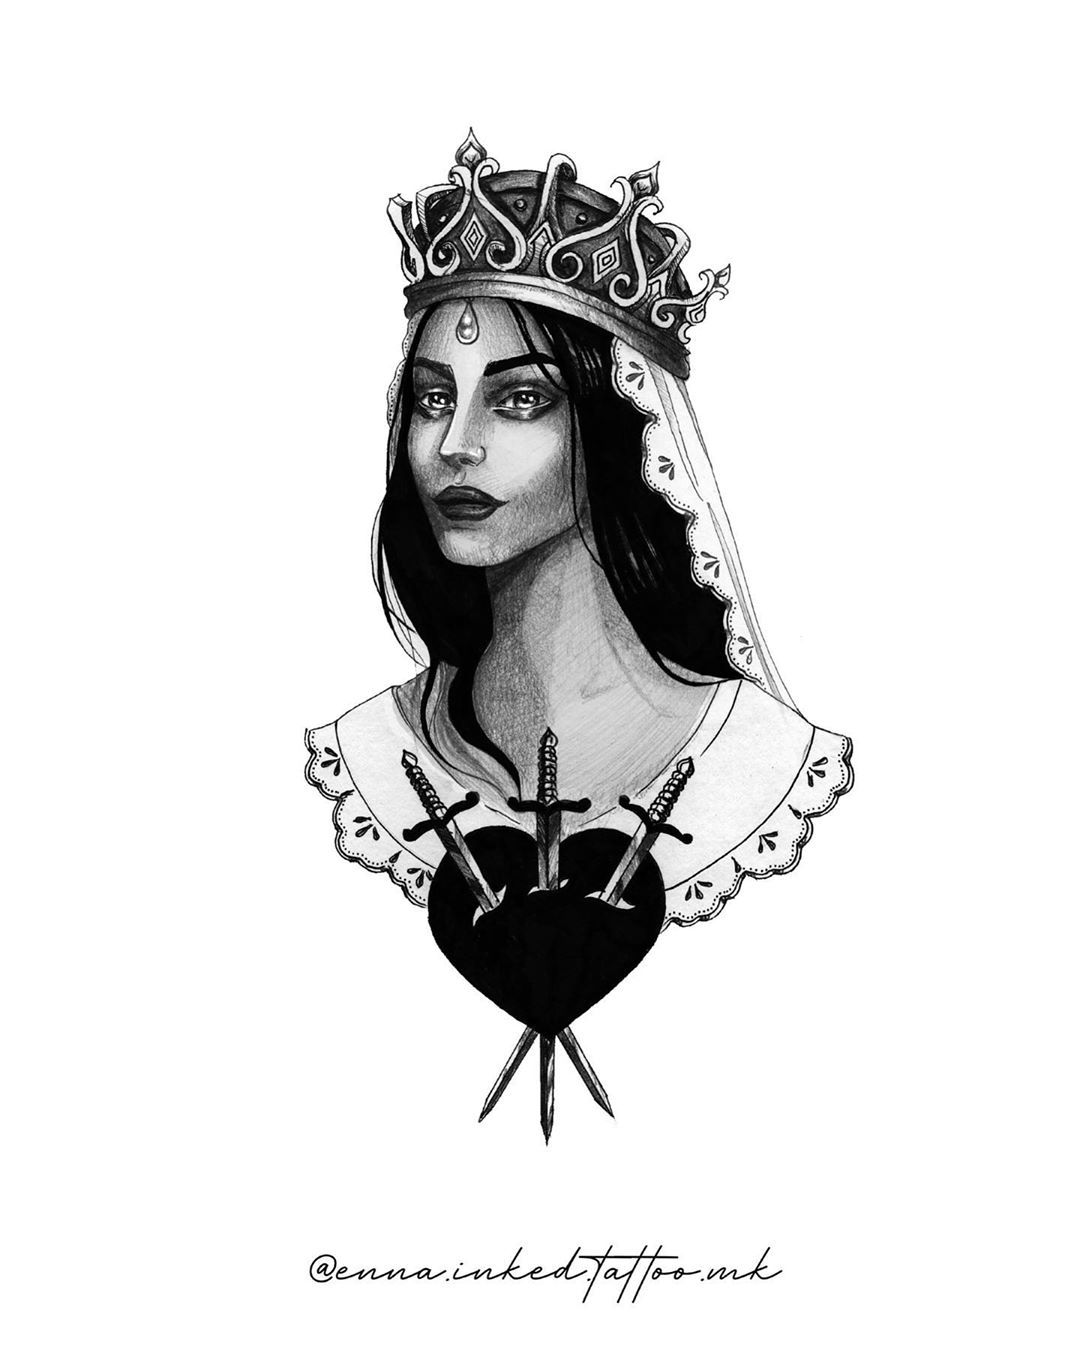 Tattoo design by @enna.inked.tattoo.mk  This design is ready to be booked for tattoo, DM for more info. . #staedtler #ink #blackink #tattoo #tattoodesign #rosettetattoo #portraittattoo #witchy #tattooartist #skopje #lineworktattoo #lineworktattoo #art #drawing #queen #queendrawing #queentattoo #heart #daggertattoo #crown #royal #neotraditionaltattoo #design